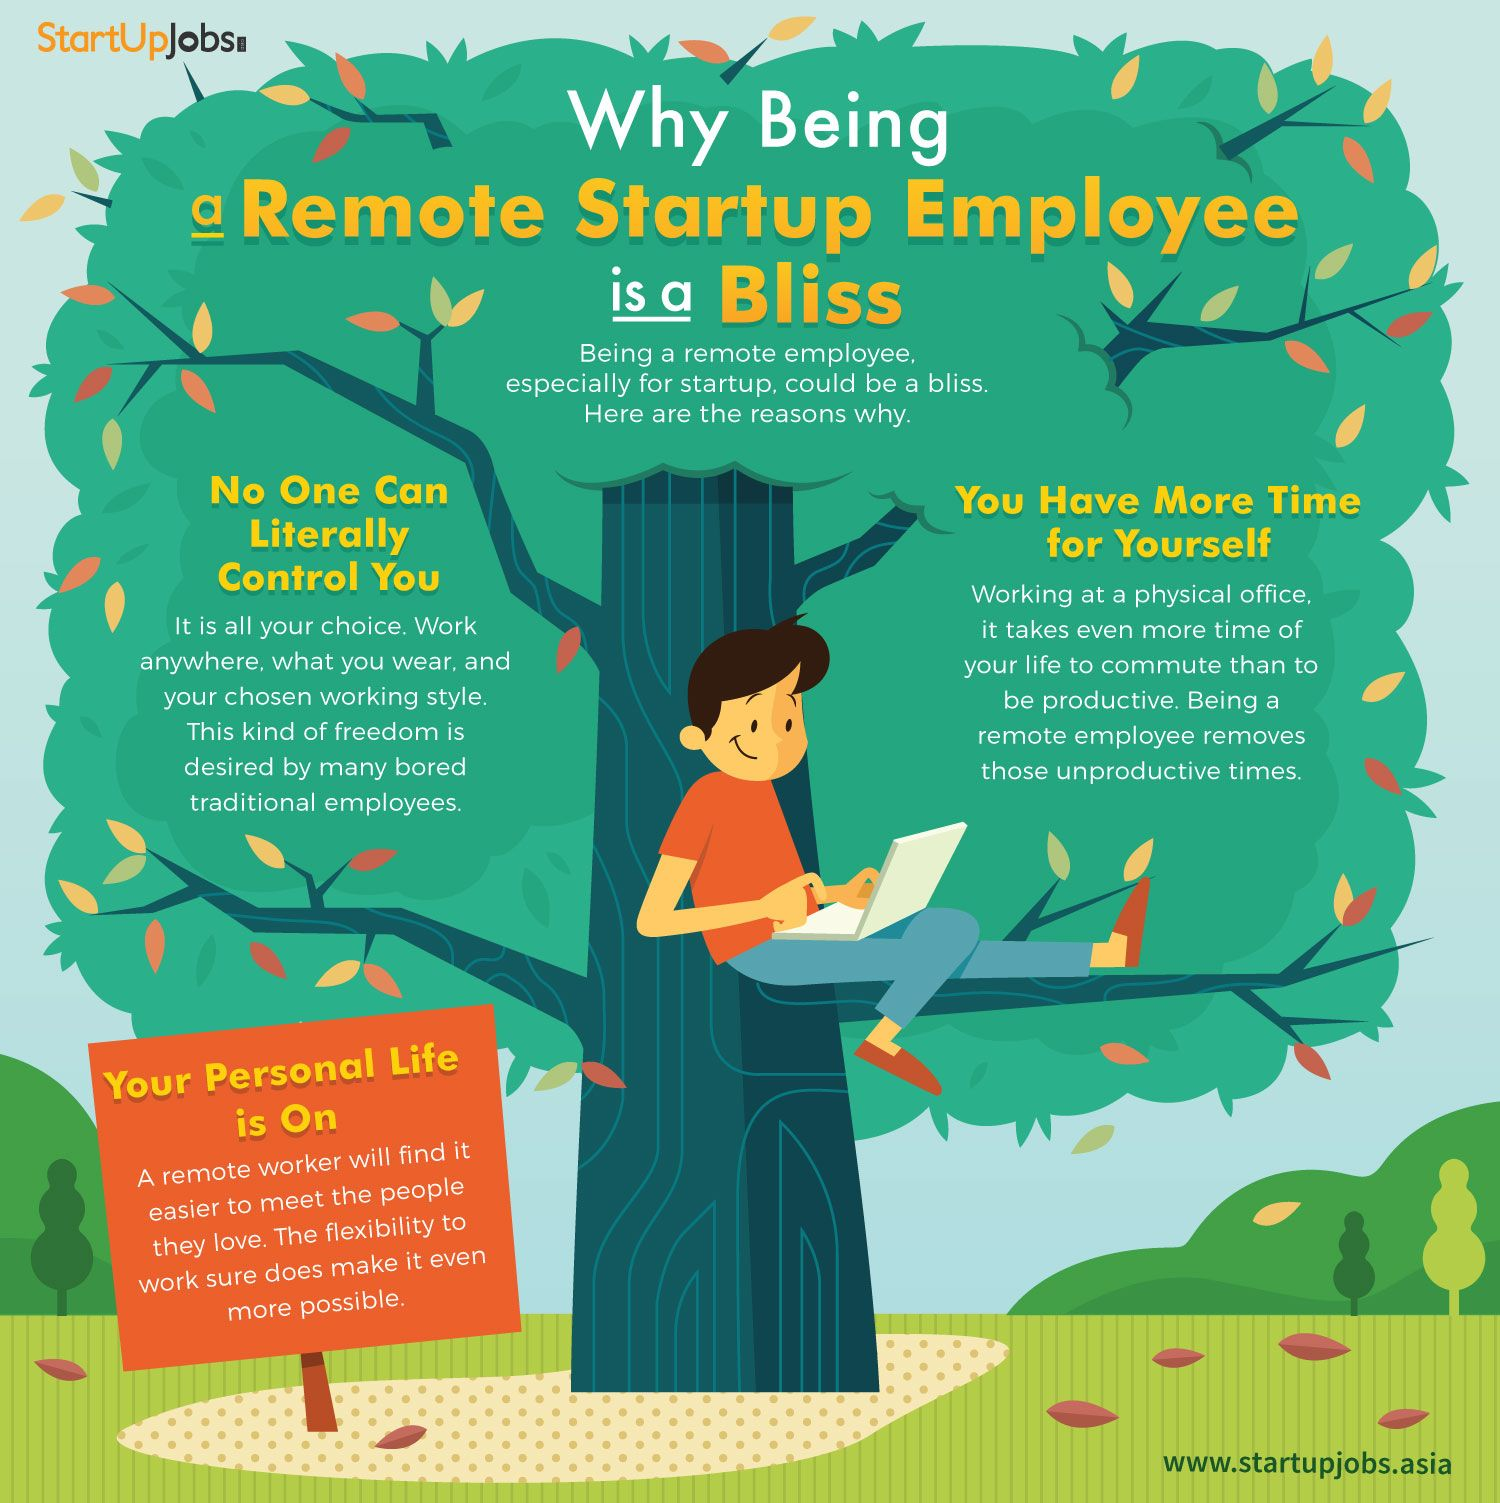 Being a #Startup Employee working remotely is a bliss! Here's why: http://bit.ly/1VFpKks  #repin #share #remote